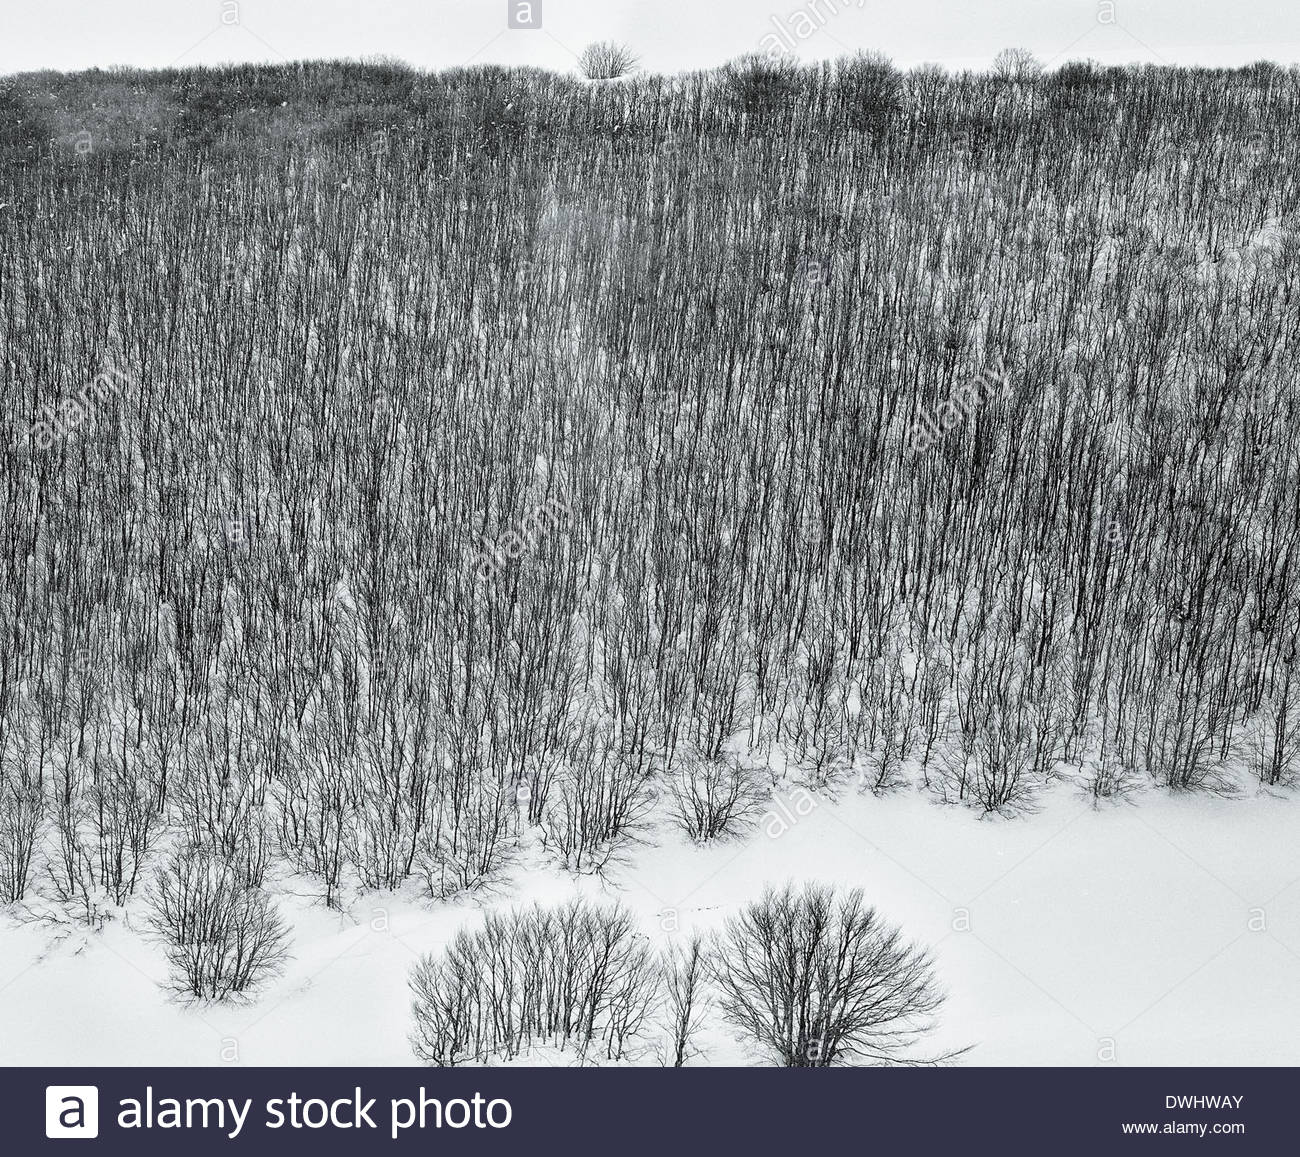 A frozen forest in the Le Marche region of Italy. - Stock Image